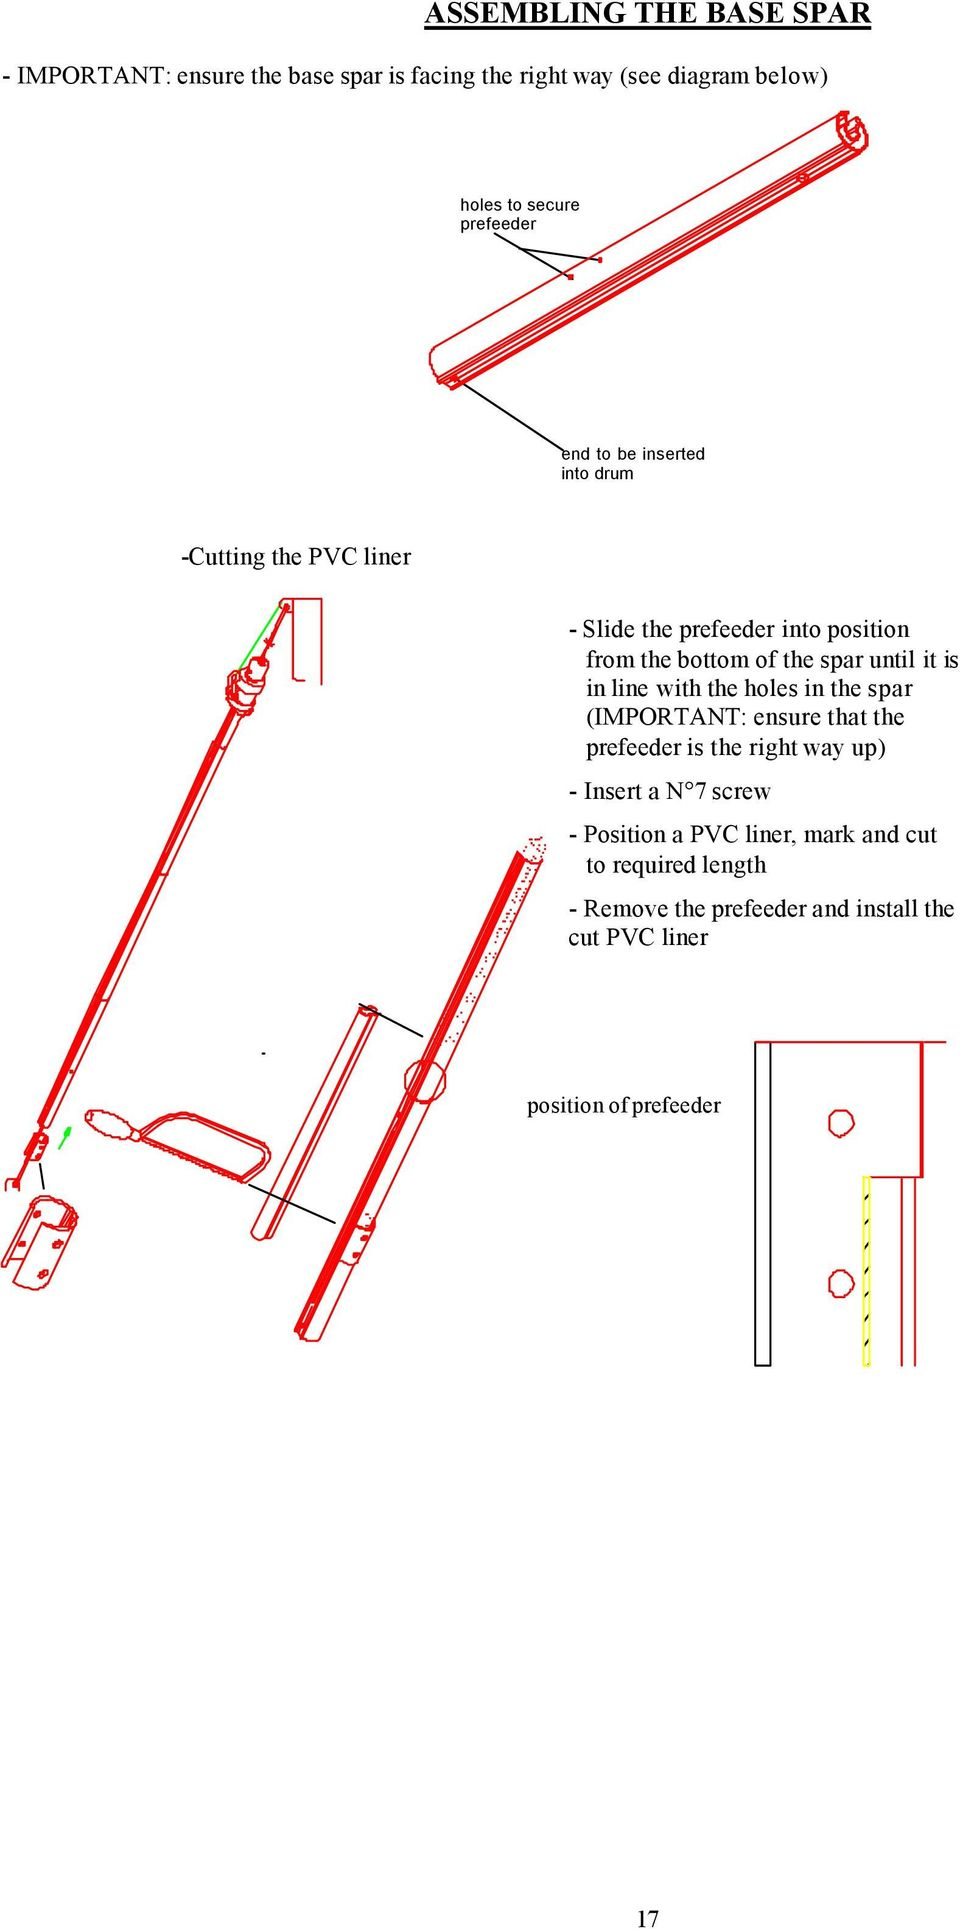 Plastimo Jib Reefing Systems S Series 406 608 810 Pdf Eastwood Guitar Wiring Diagram Until It Is In Line With The Holes Spar Important Ensure That